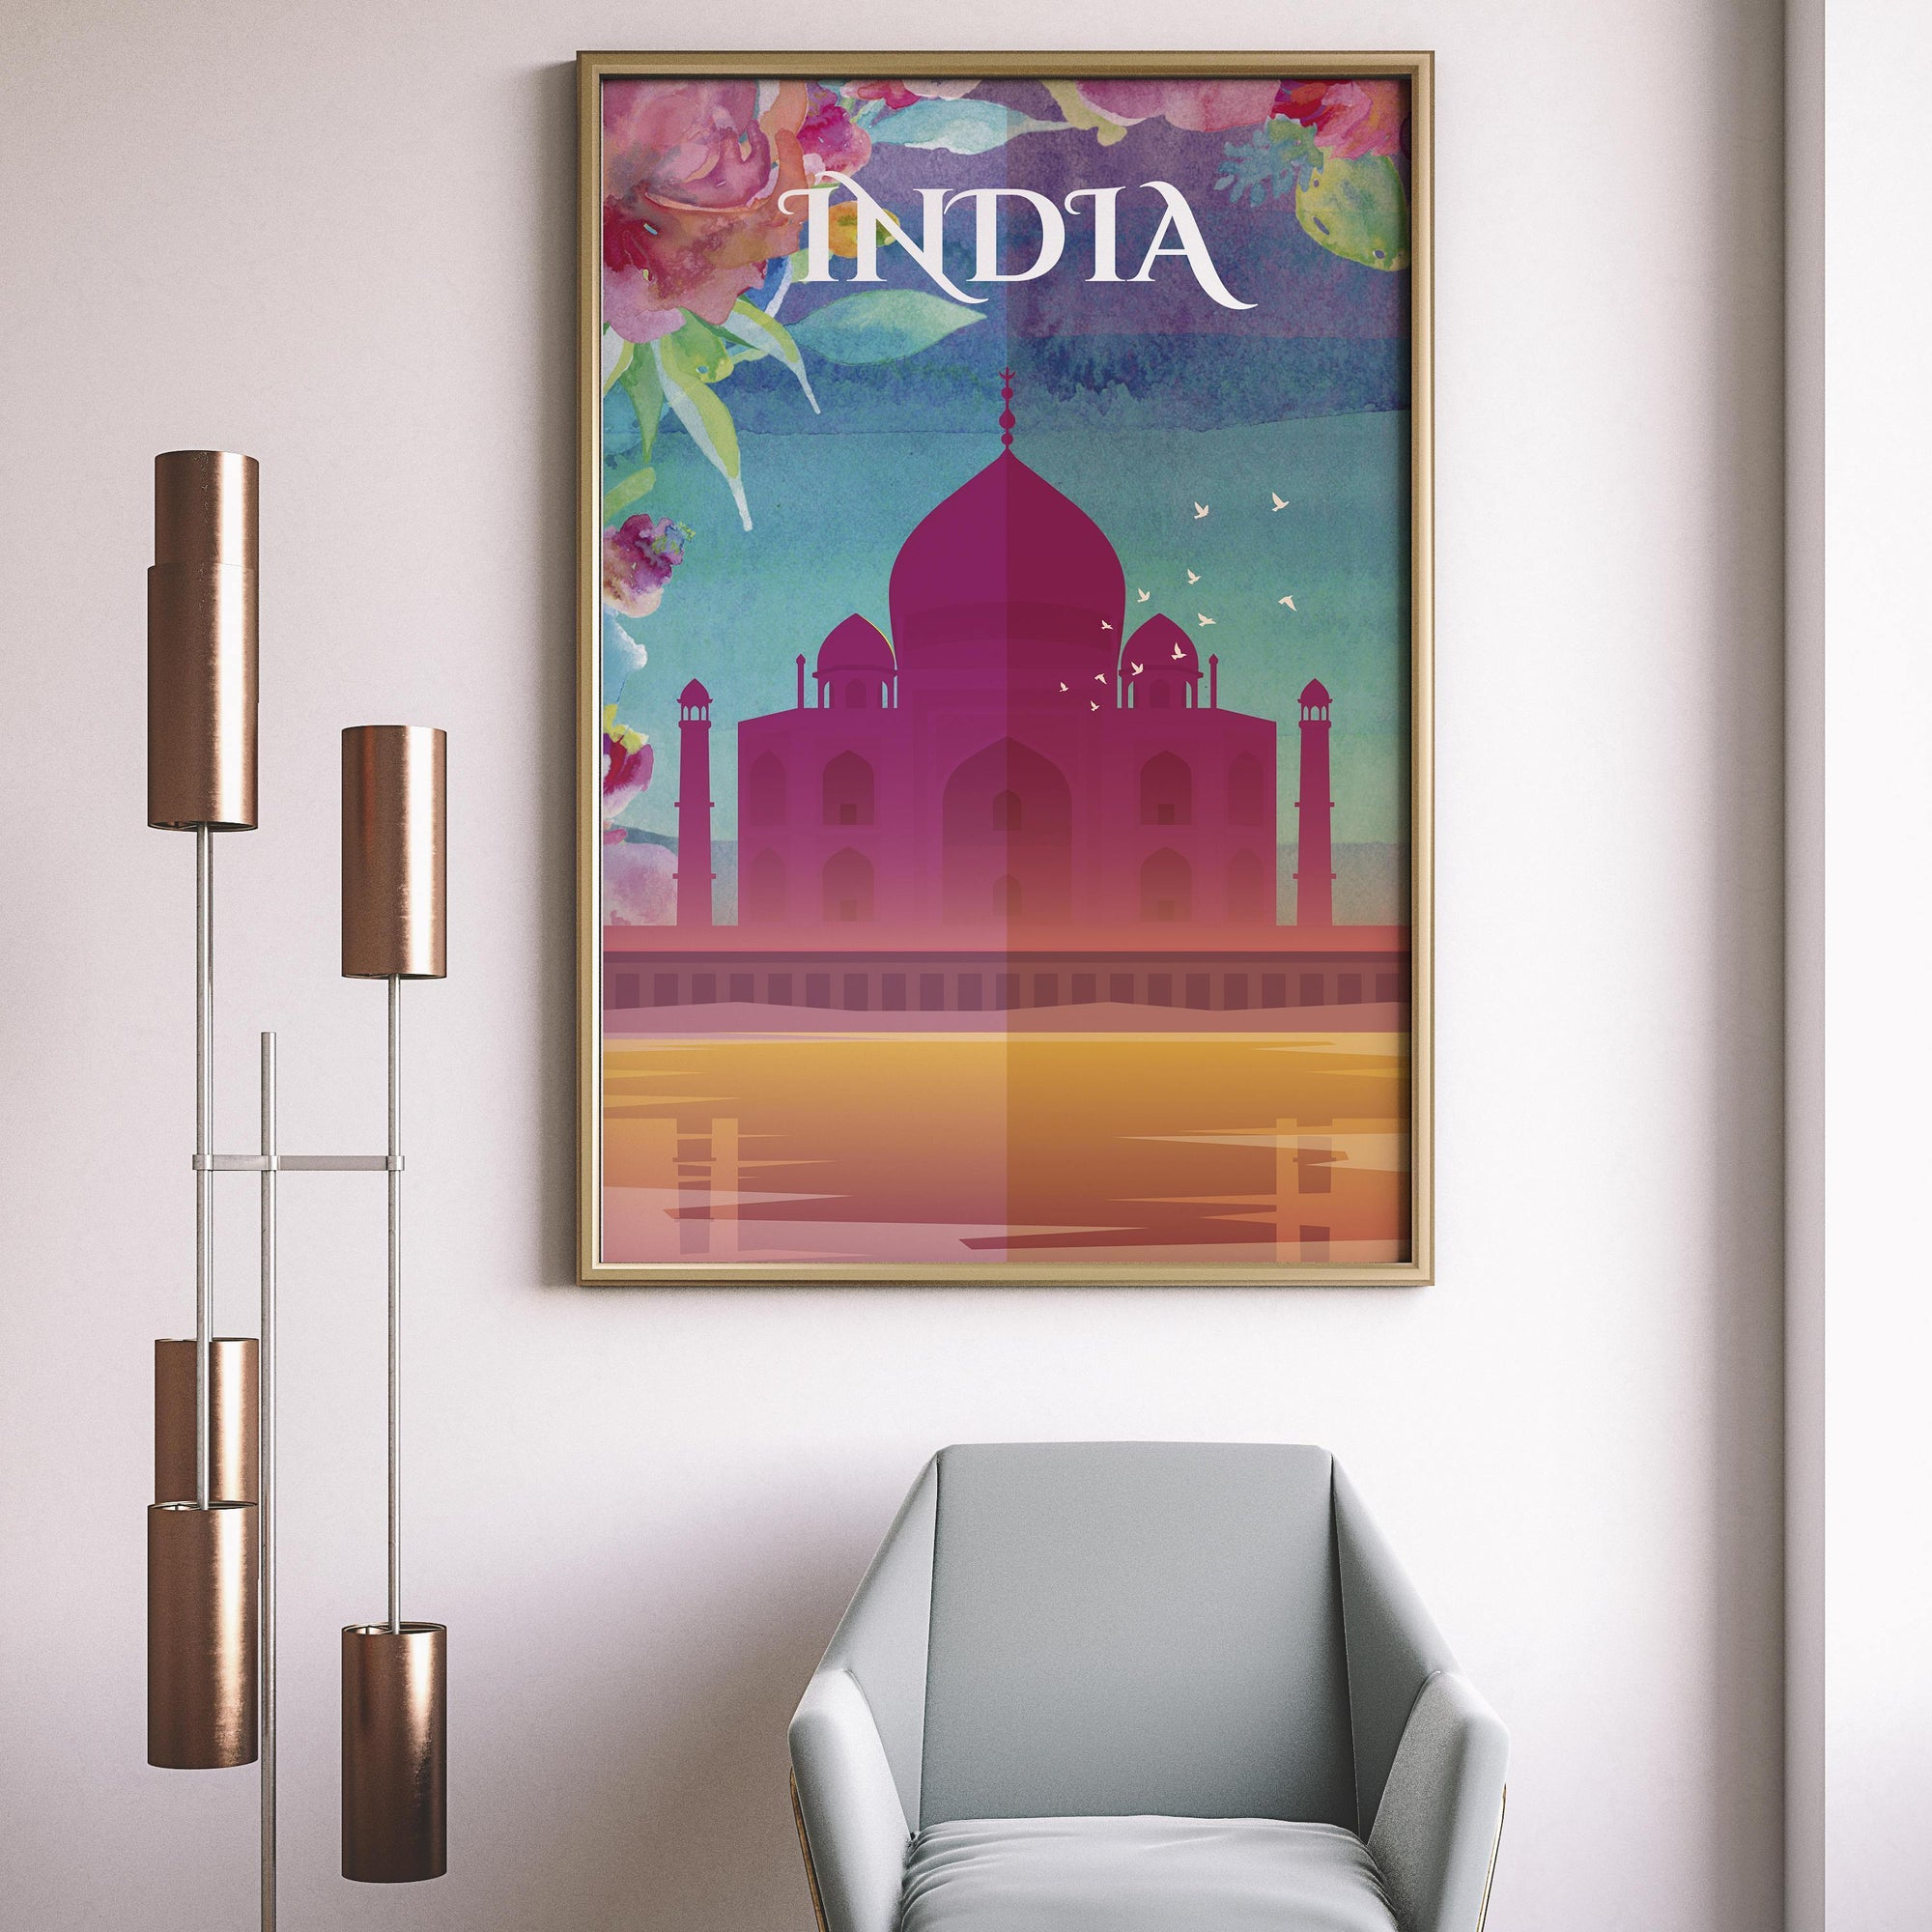 India, Taj Mahal, Agra, Cityscape Travel Print